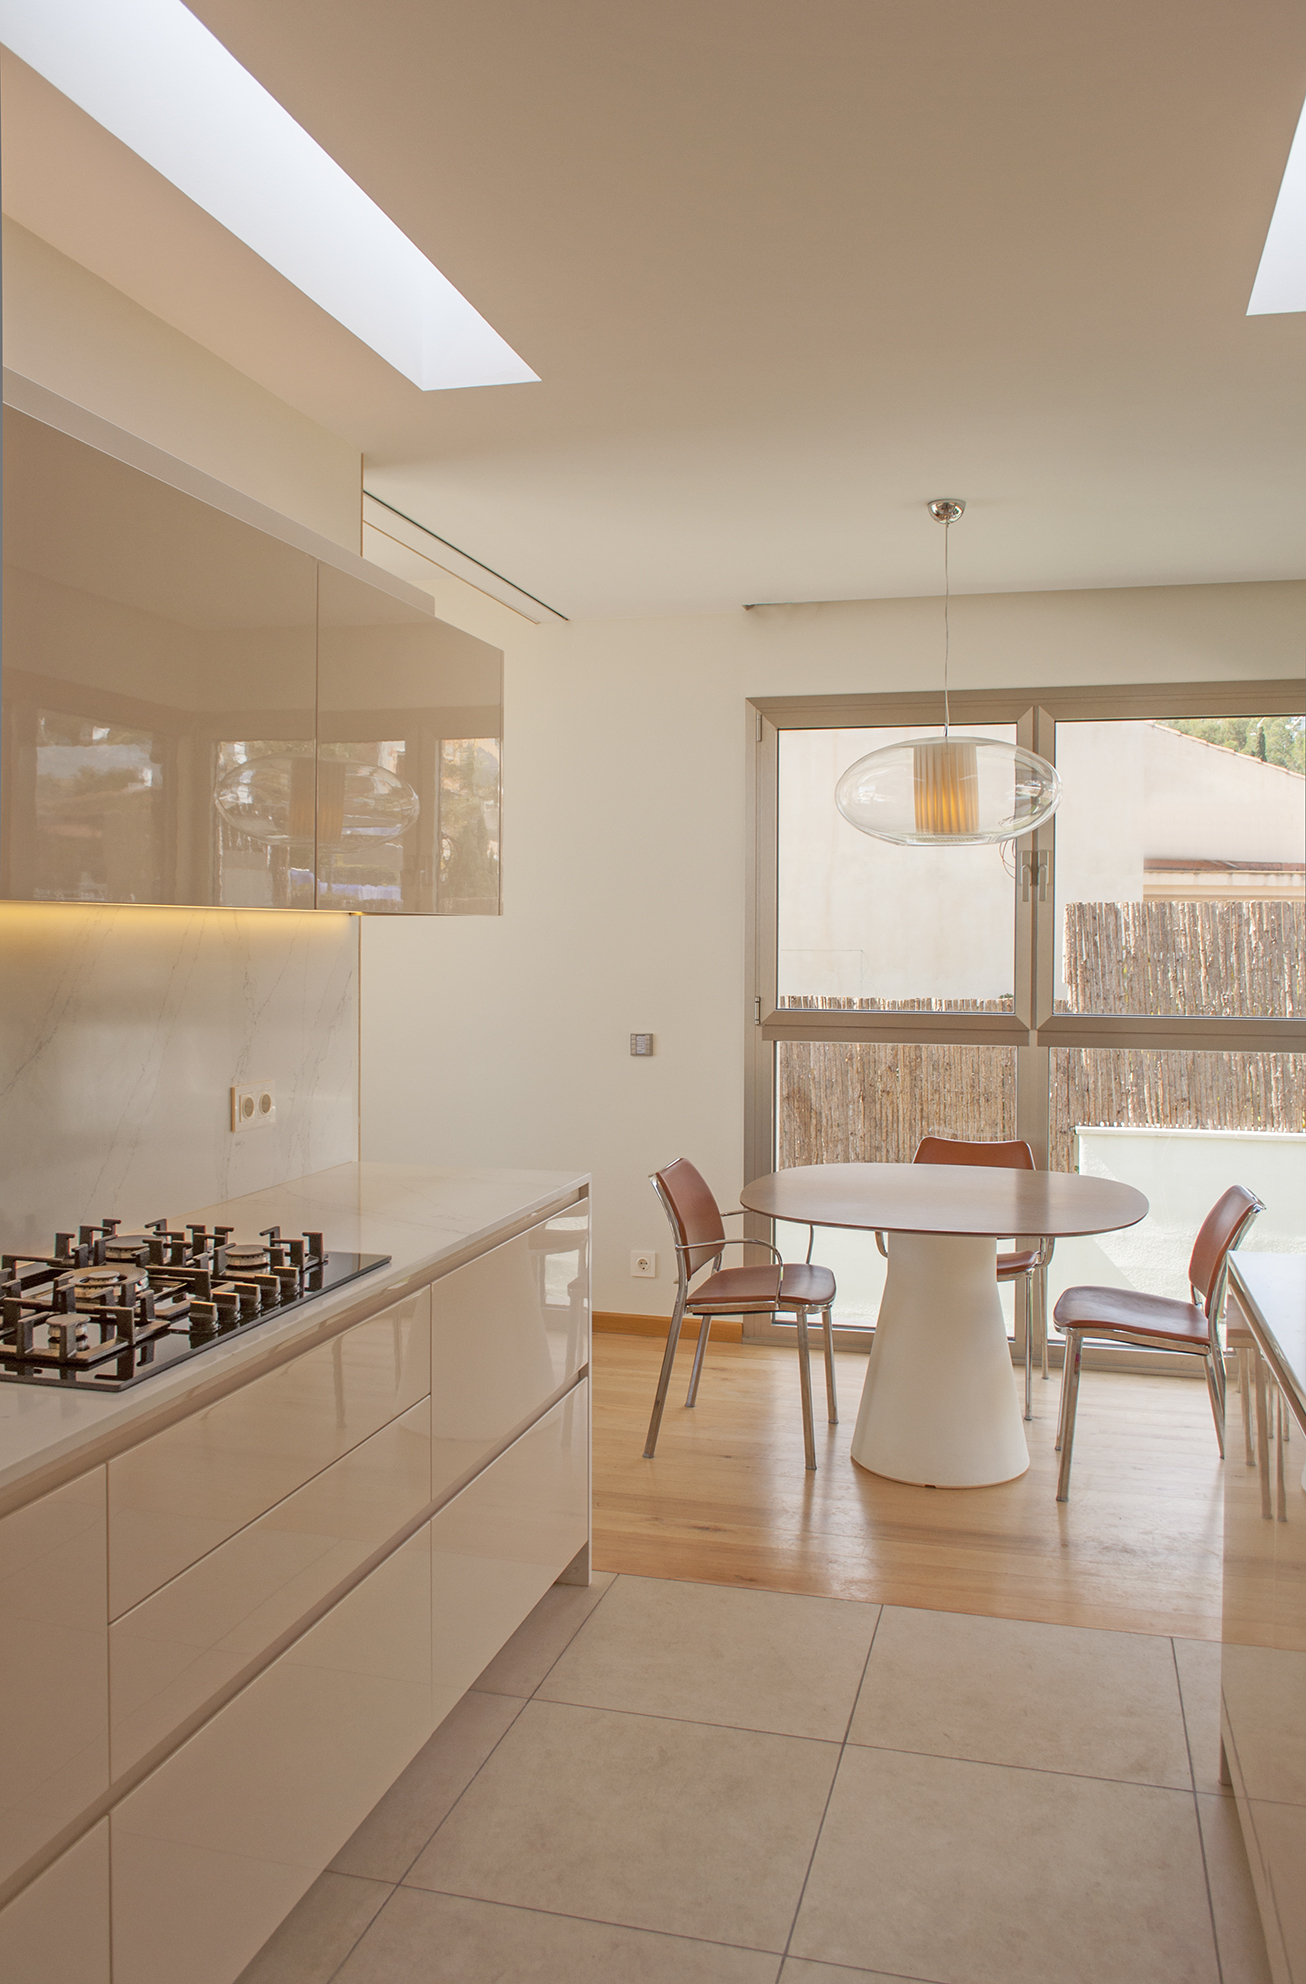 22-rardo-architects-houses-in-sitges-interior-design-dining-room-kitchen-lighting-lights